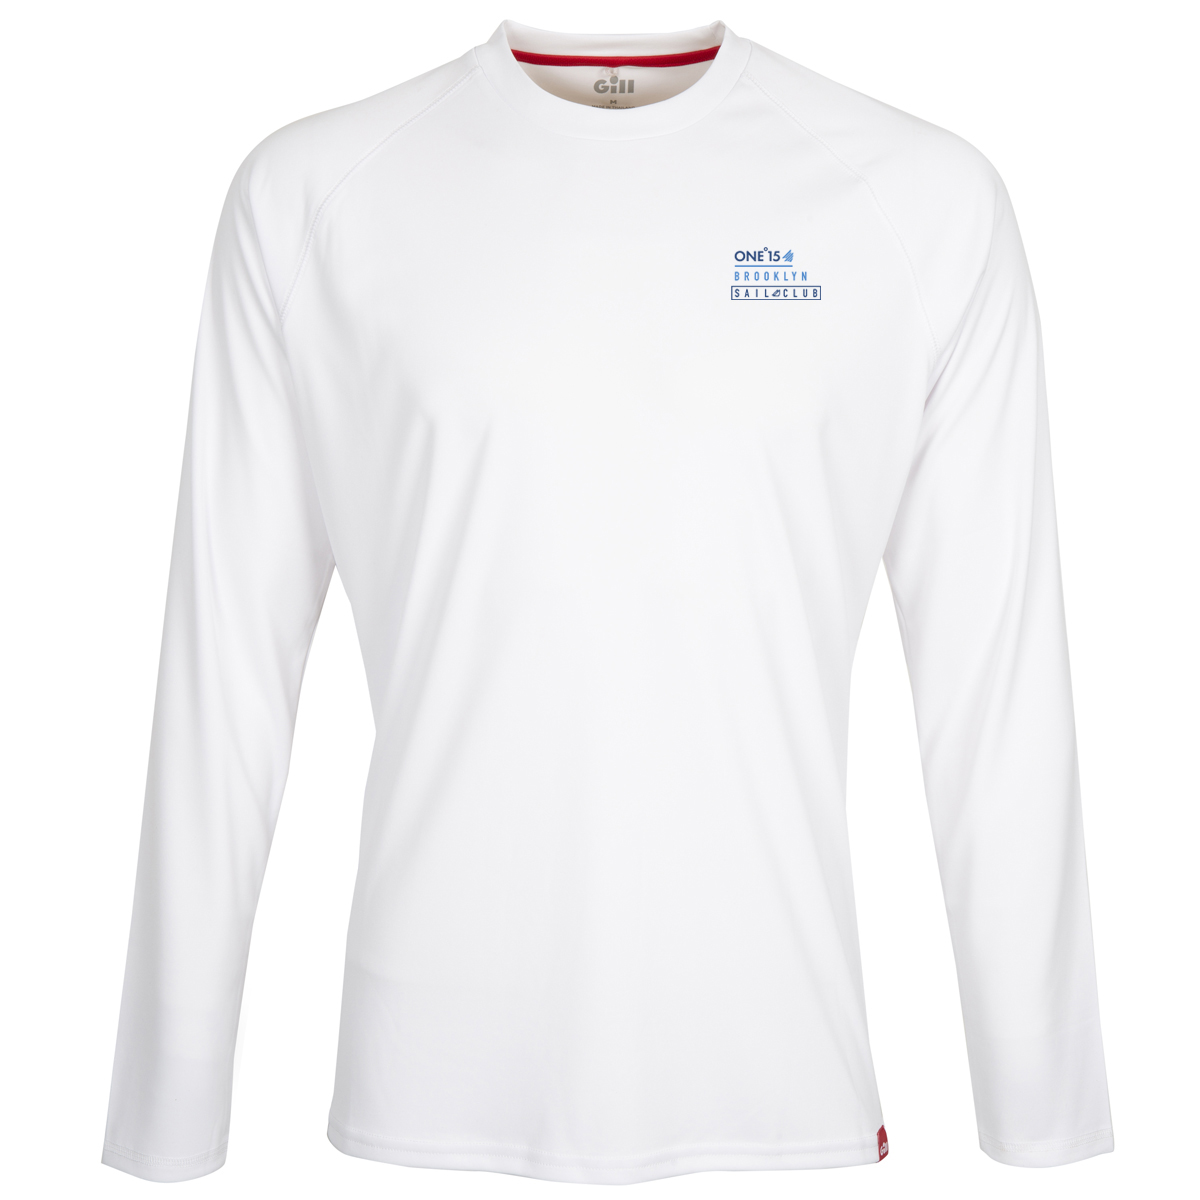 One 15 Brooklyn Sail Club - Men's Gill UV Long Sleeve Tech Tee